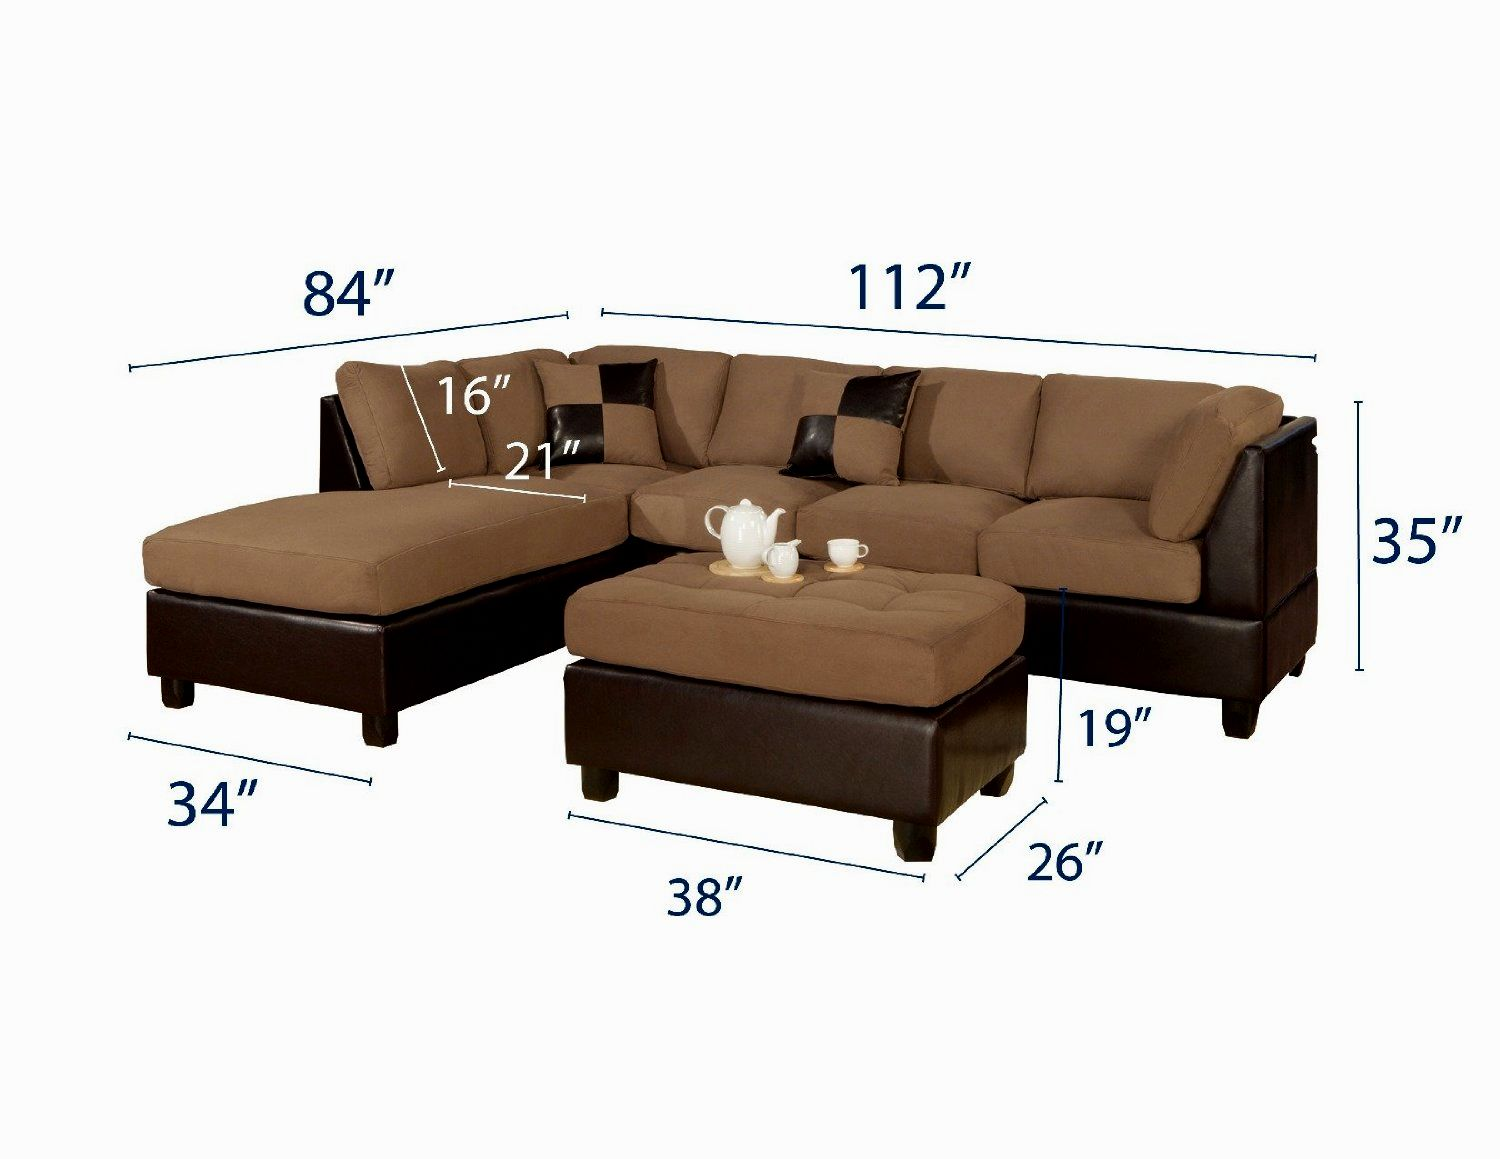 lovely small sectional sofas inspiration-Luxury Small Sectional sofas Plan